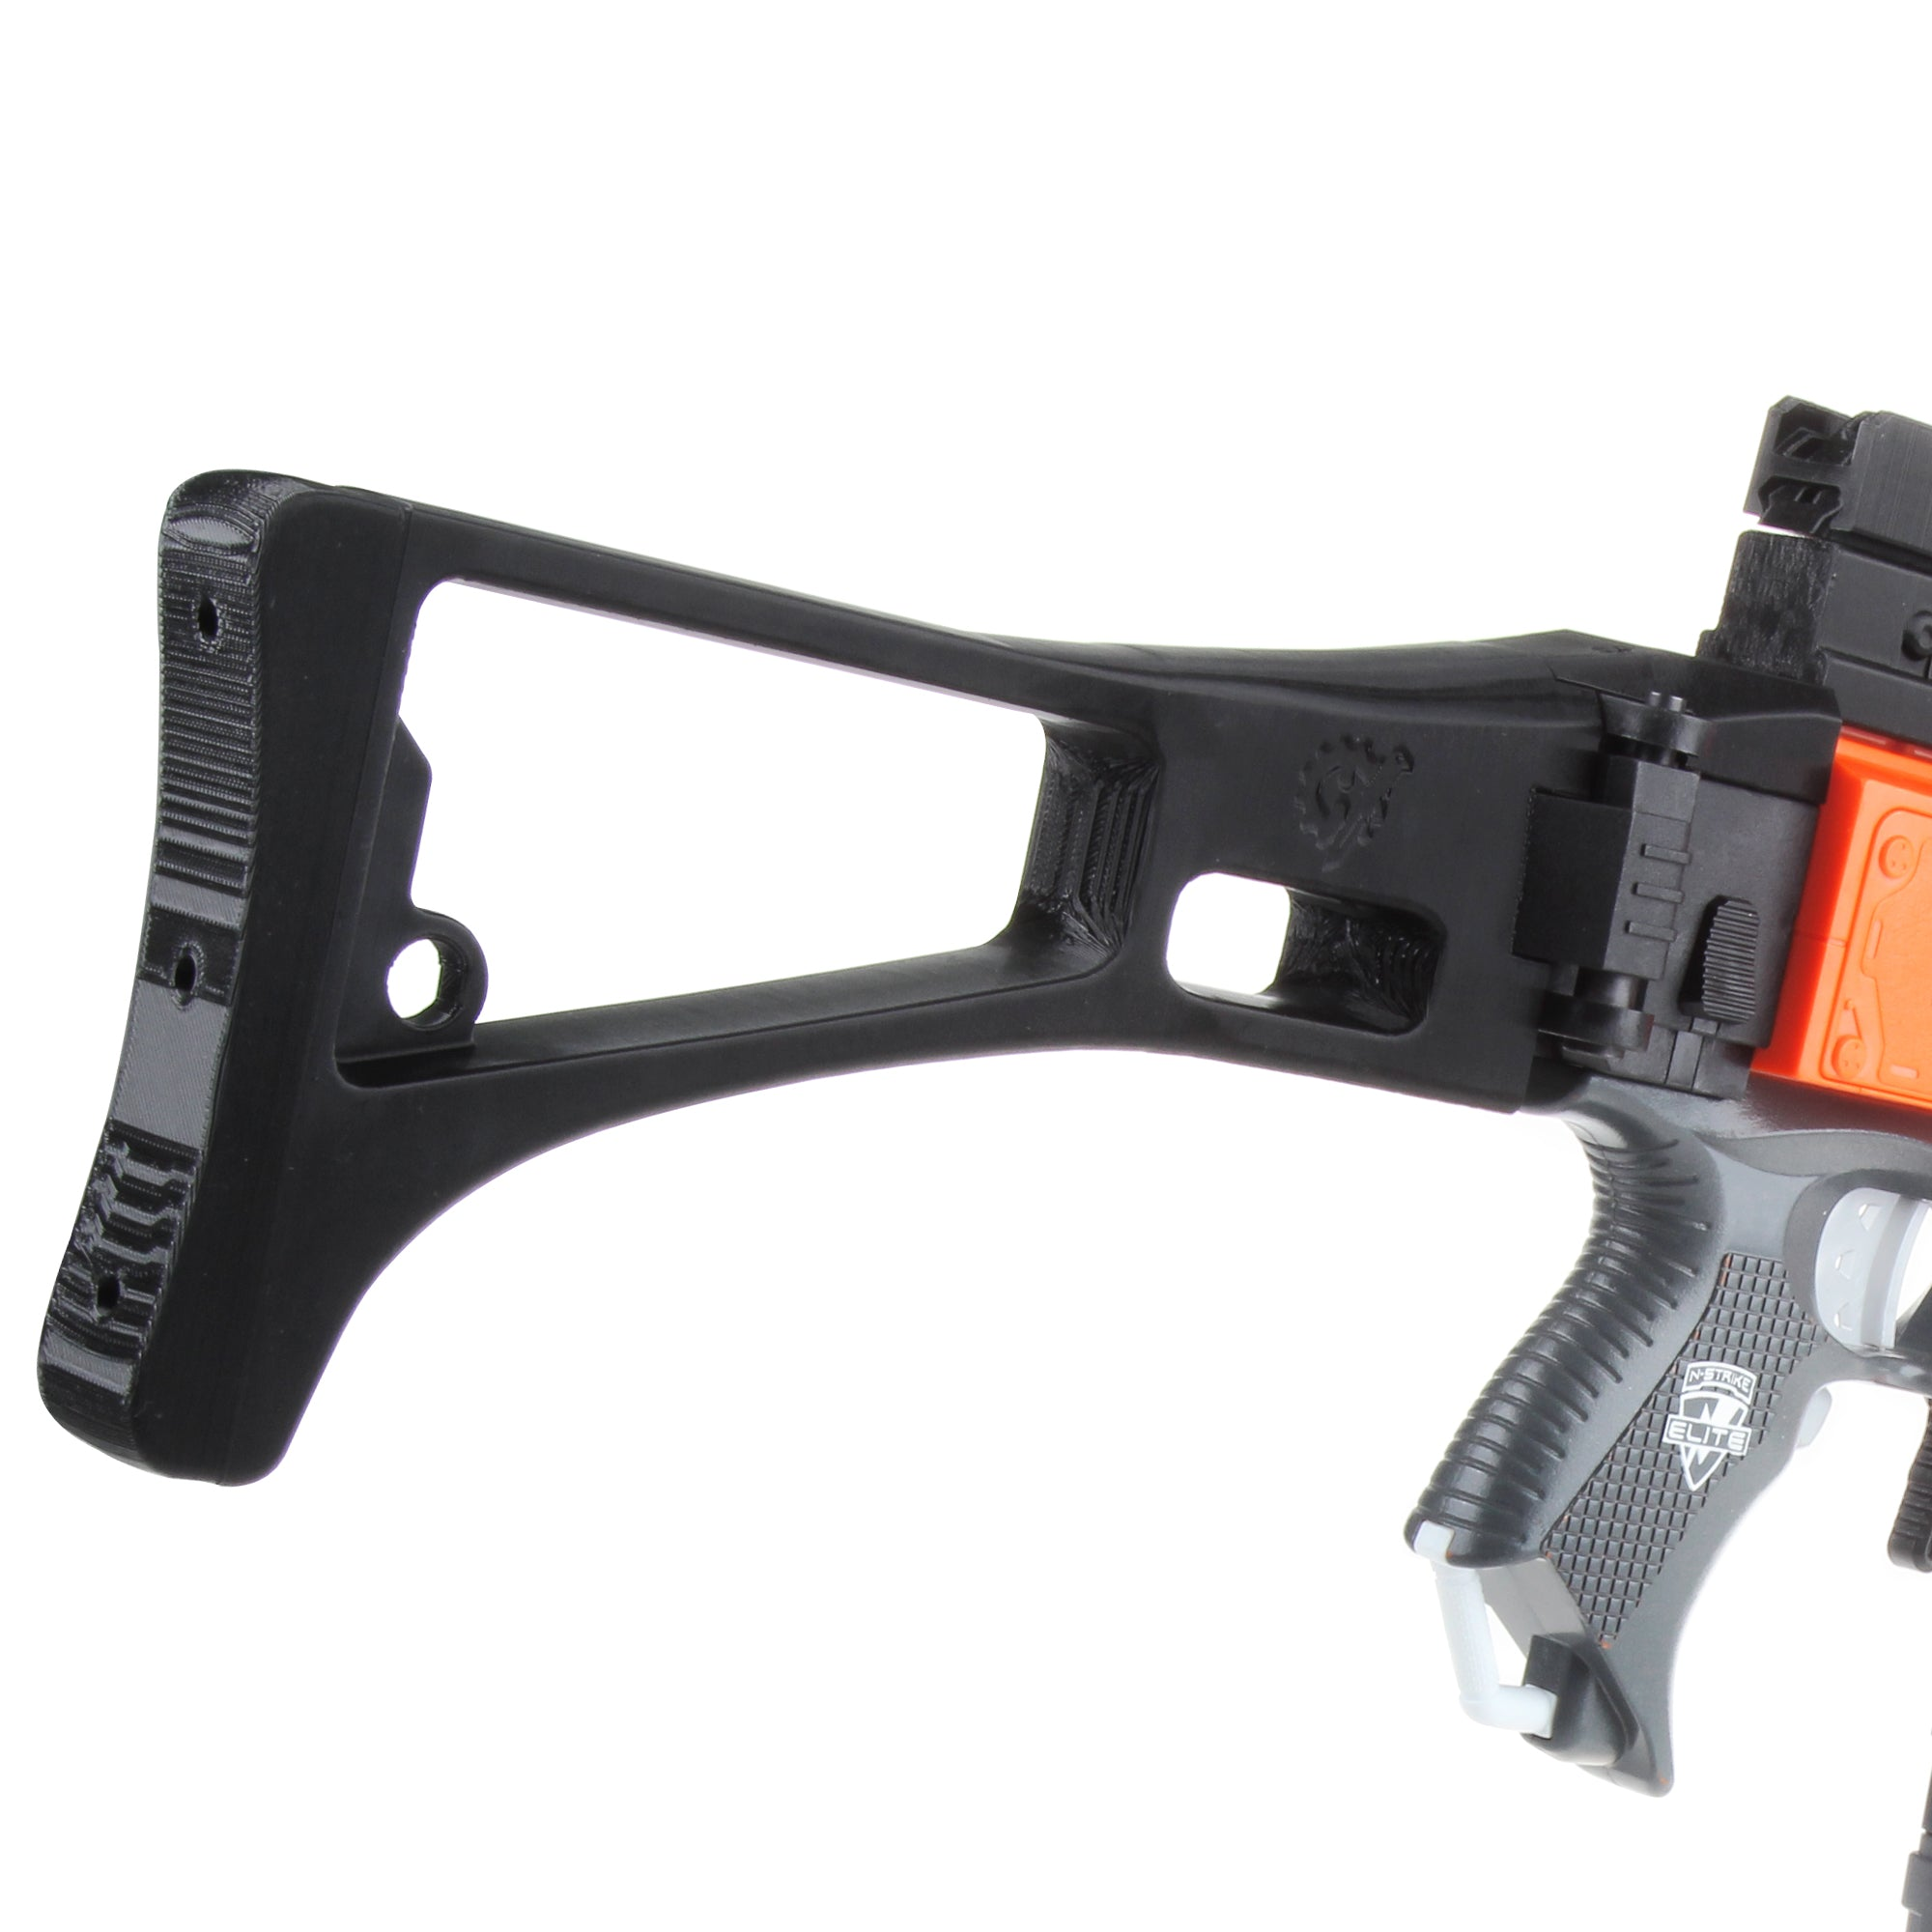 JGCWorker STF-W016-A G36 Style Mod Kits Set With Orange Adaptor And Long Front Tube for Nerf N-Strike Elite Stryfe Blaster - Nerf Mod Kits -Worker Mod Kits